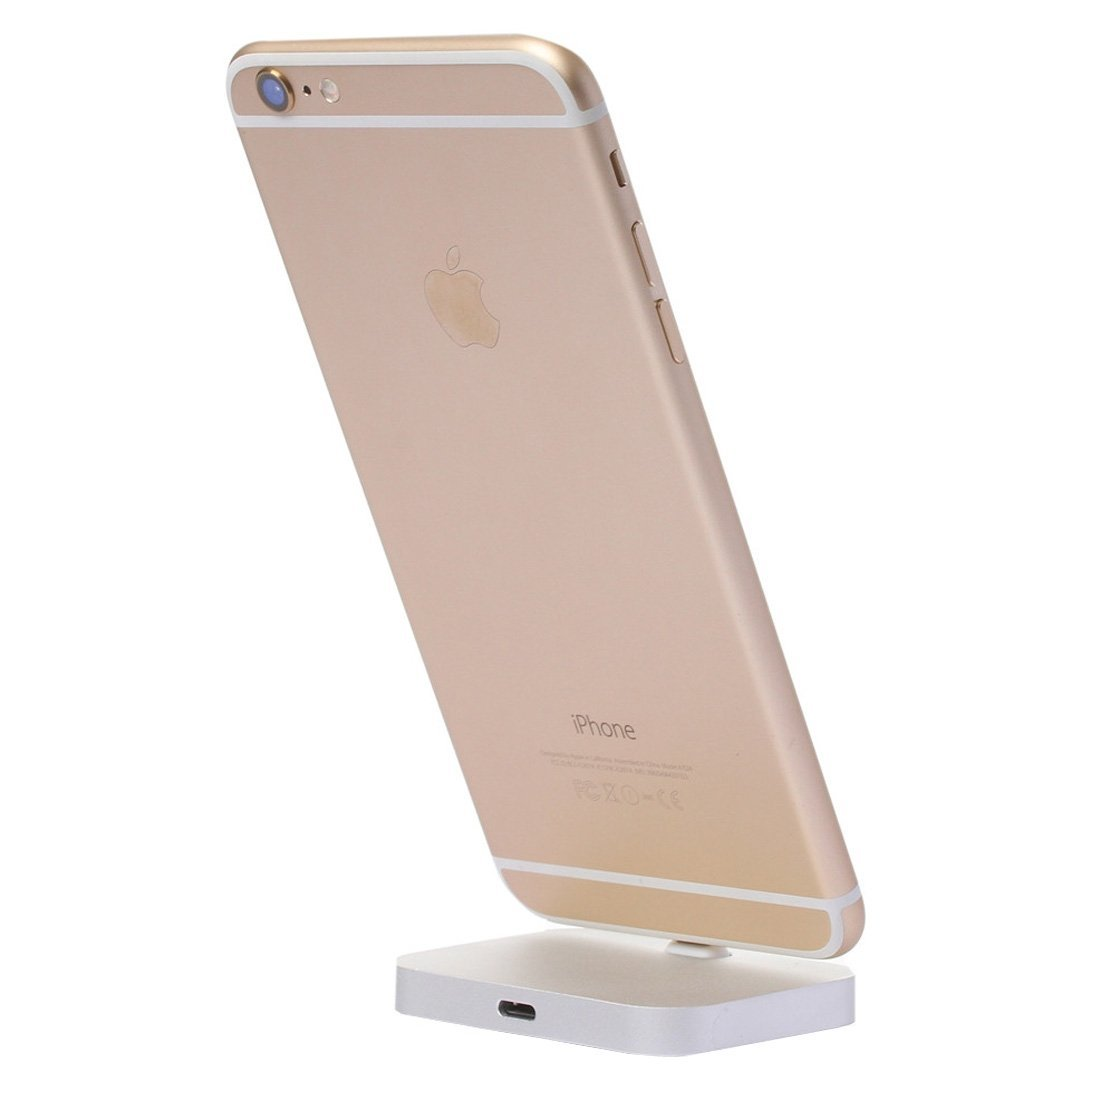 apple aluminium charging dock, Fone-Stuff - desktop charge and sync cradle mount stand for iphone 7/plus 6s plus & 6 plus in silver